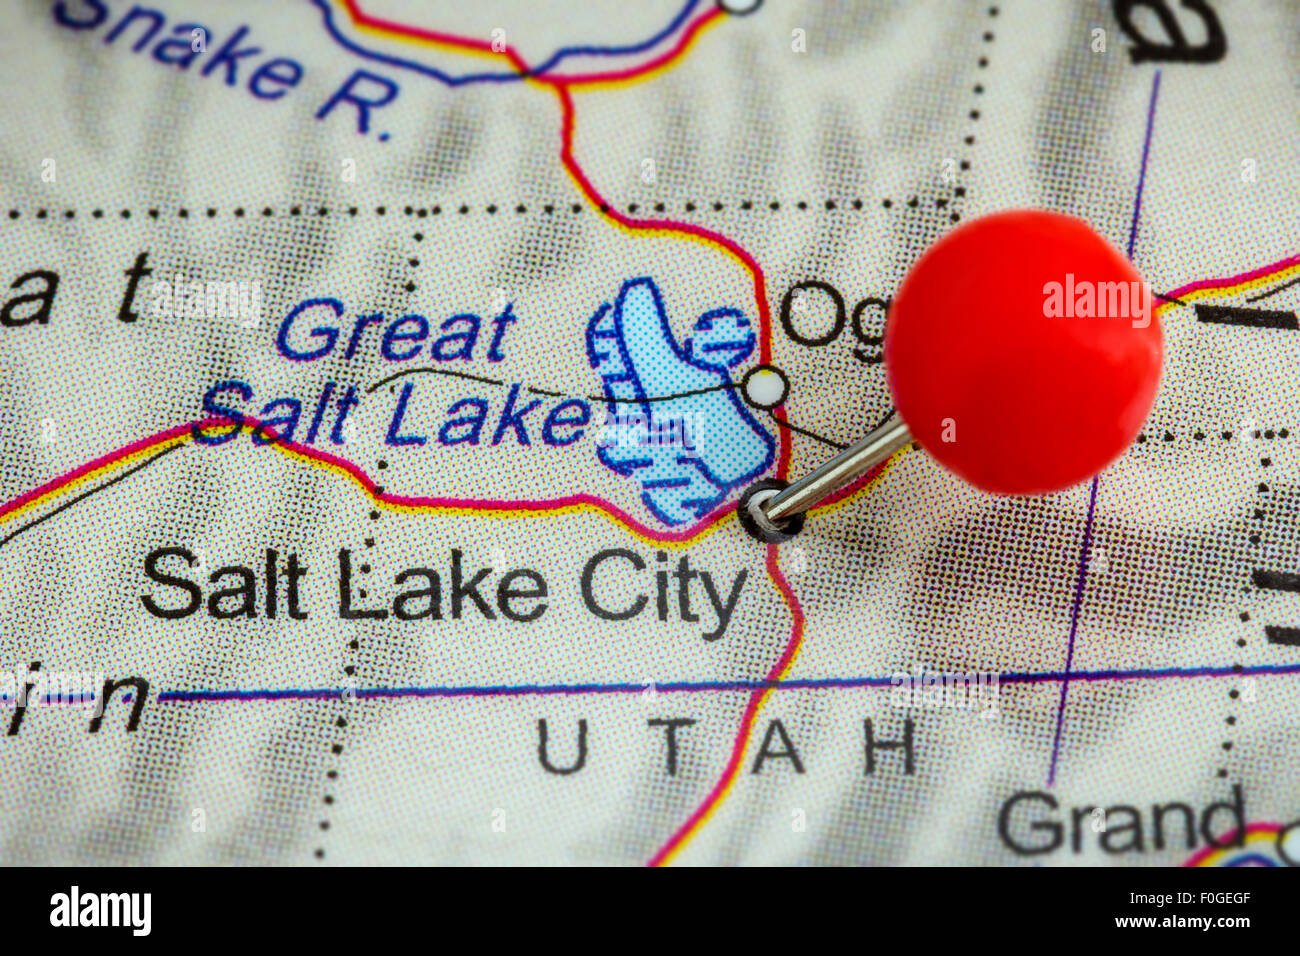 Salt Lake City Map Stock Photos & Salt Lake City Map Stock ... Salt Lake City Utah On Usa Map on salt lake city va map, snowbird utah map, sioux city iowa on usa map, salt lake city on a state map, salt lake city streetcar map, salt lake city utah area map, salt lake city with map of america, southern utah tourism map, salt lake city zip code map, sandy utah on usa map, utah airports map, snowbird mountains north carolina map, salt lake city on us map, great salt lake map, lake city street map, salt lake city parking map, utah road map, kansas city missouri on usa map, ogden utah on usa map,